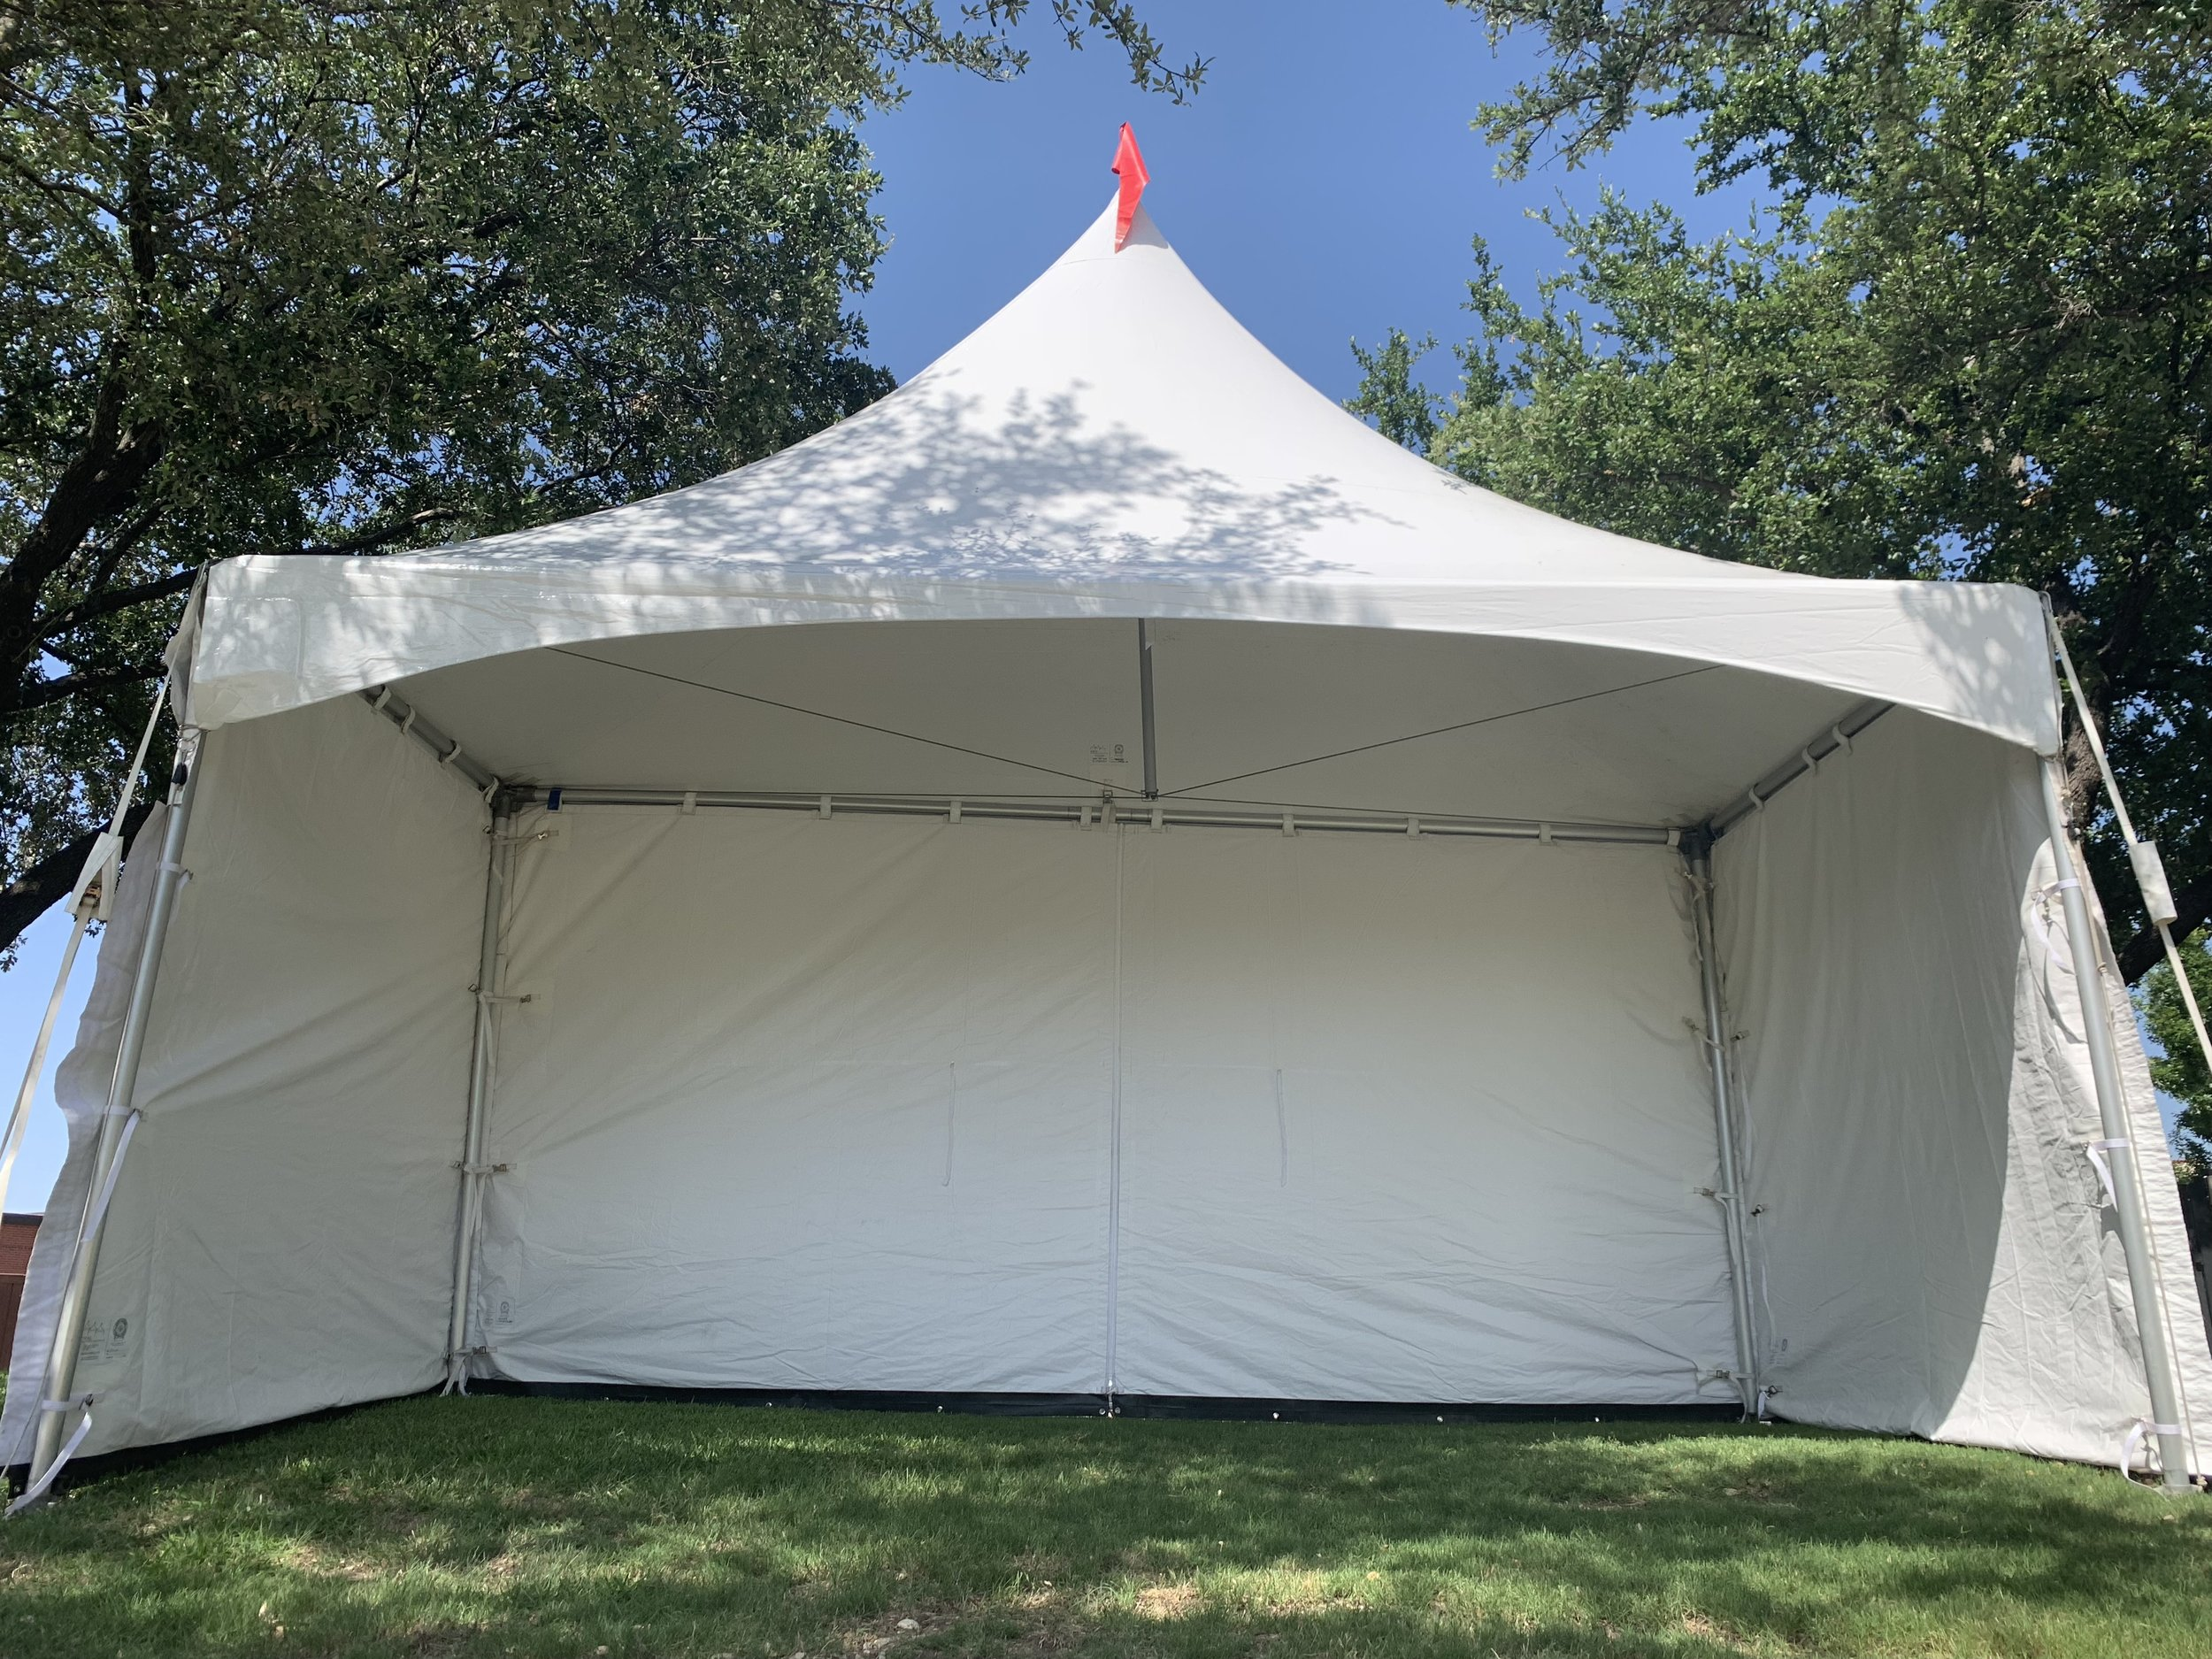 Party-Event Rental-Tent Rental-Table Rent-Chair Rental-Stage Rental